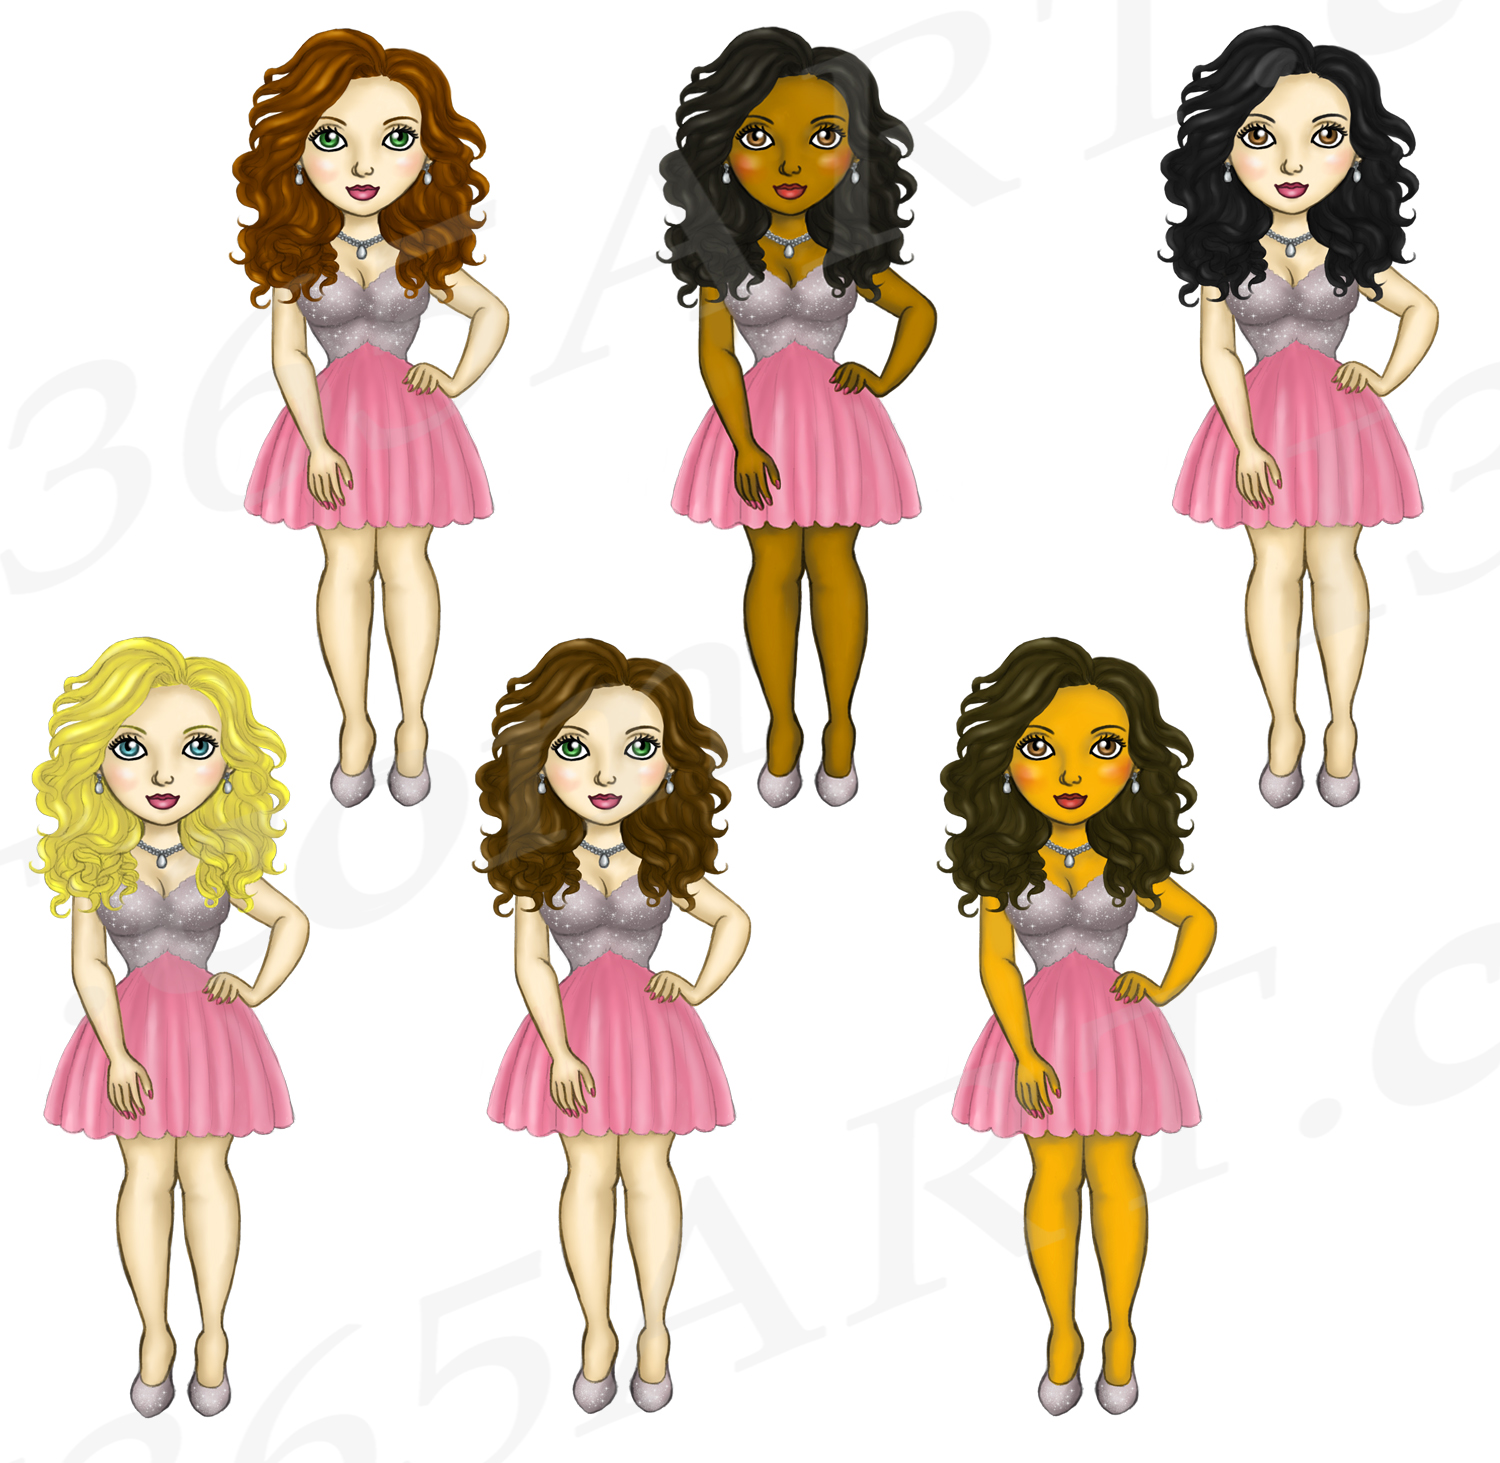 Party Dress Girls Cute Pink Dress Clipart, Fashion Dolls example image 3